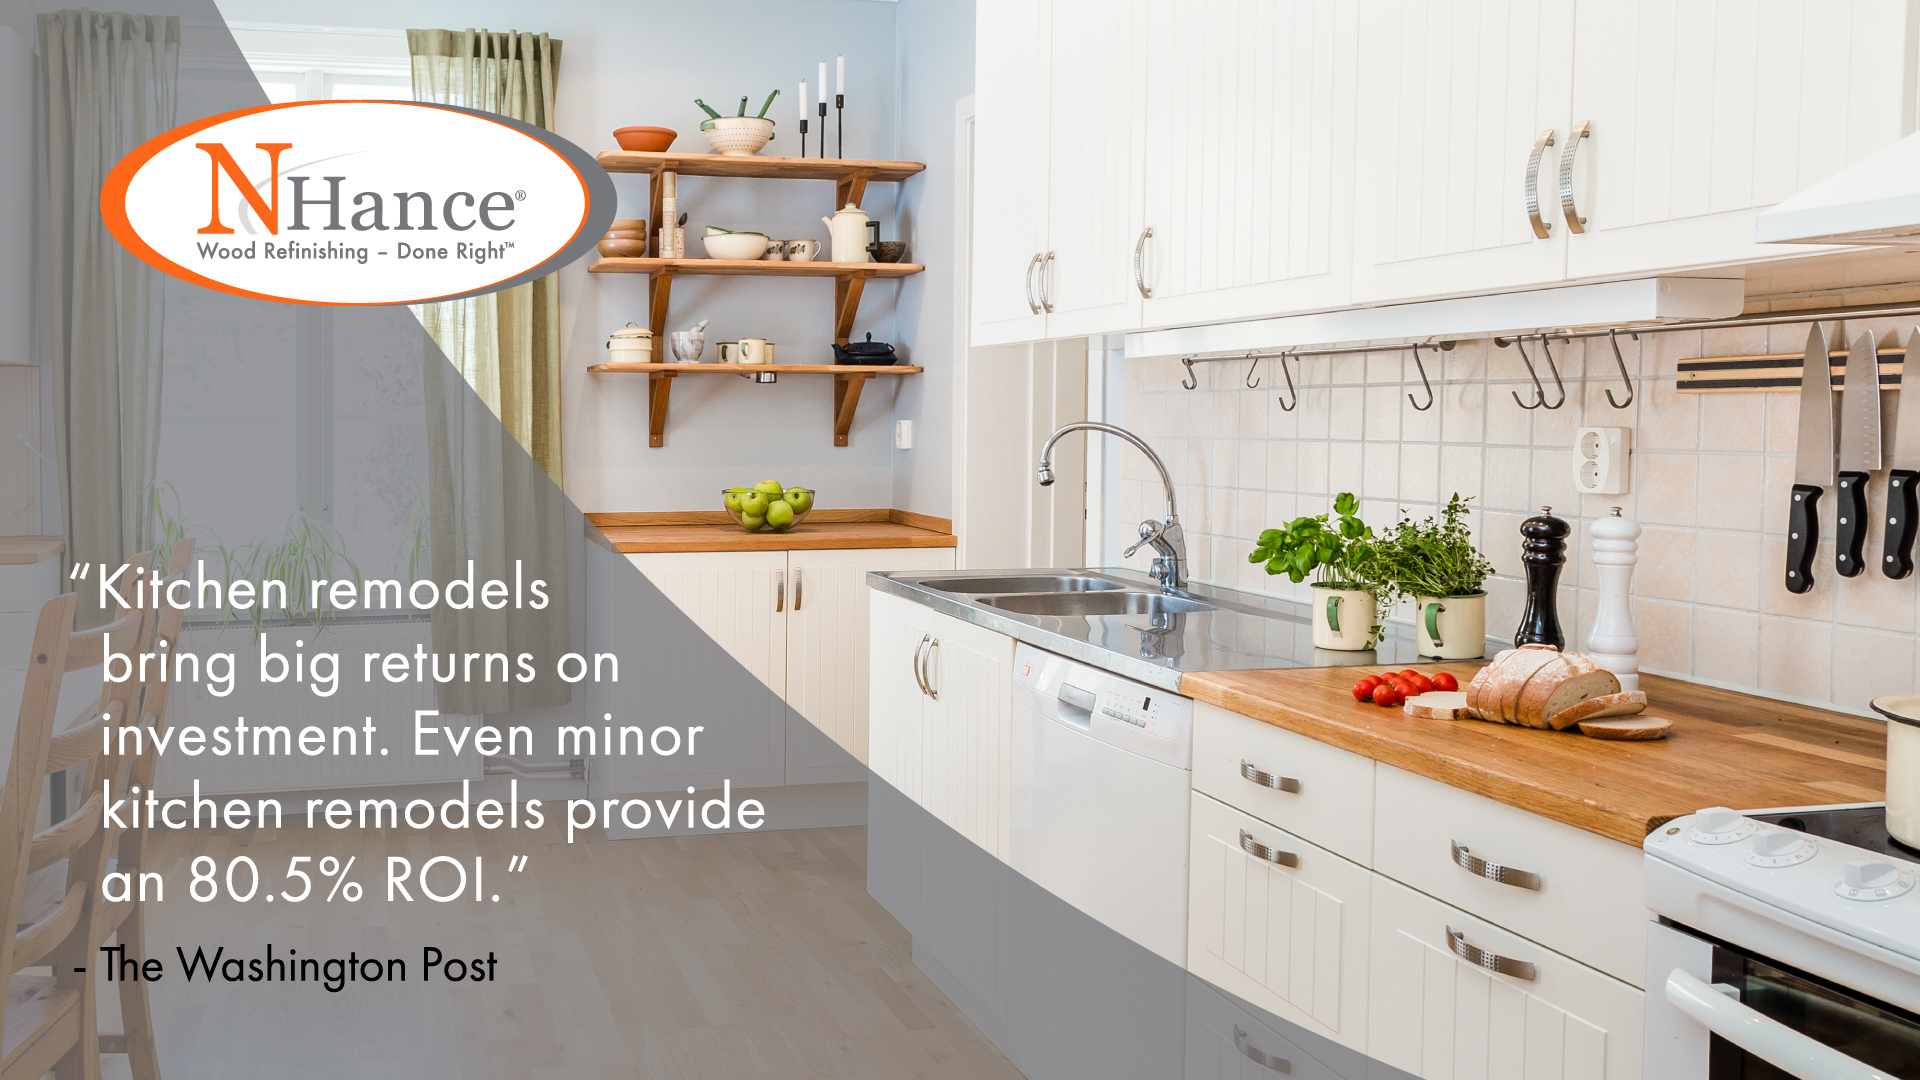 N-Hance franchise infographic about kitchen remodels big returns on investment with 80.5% ROI